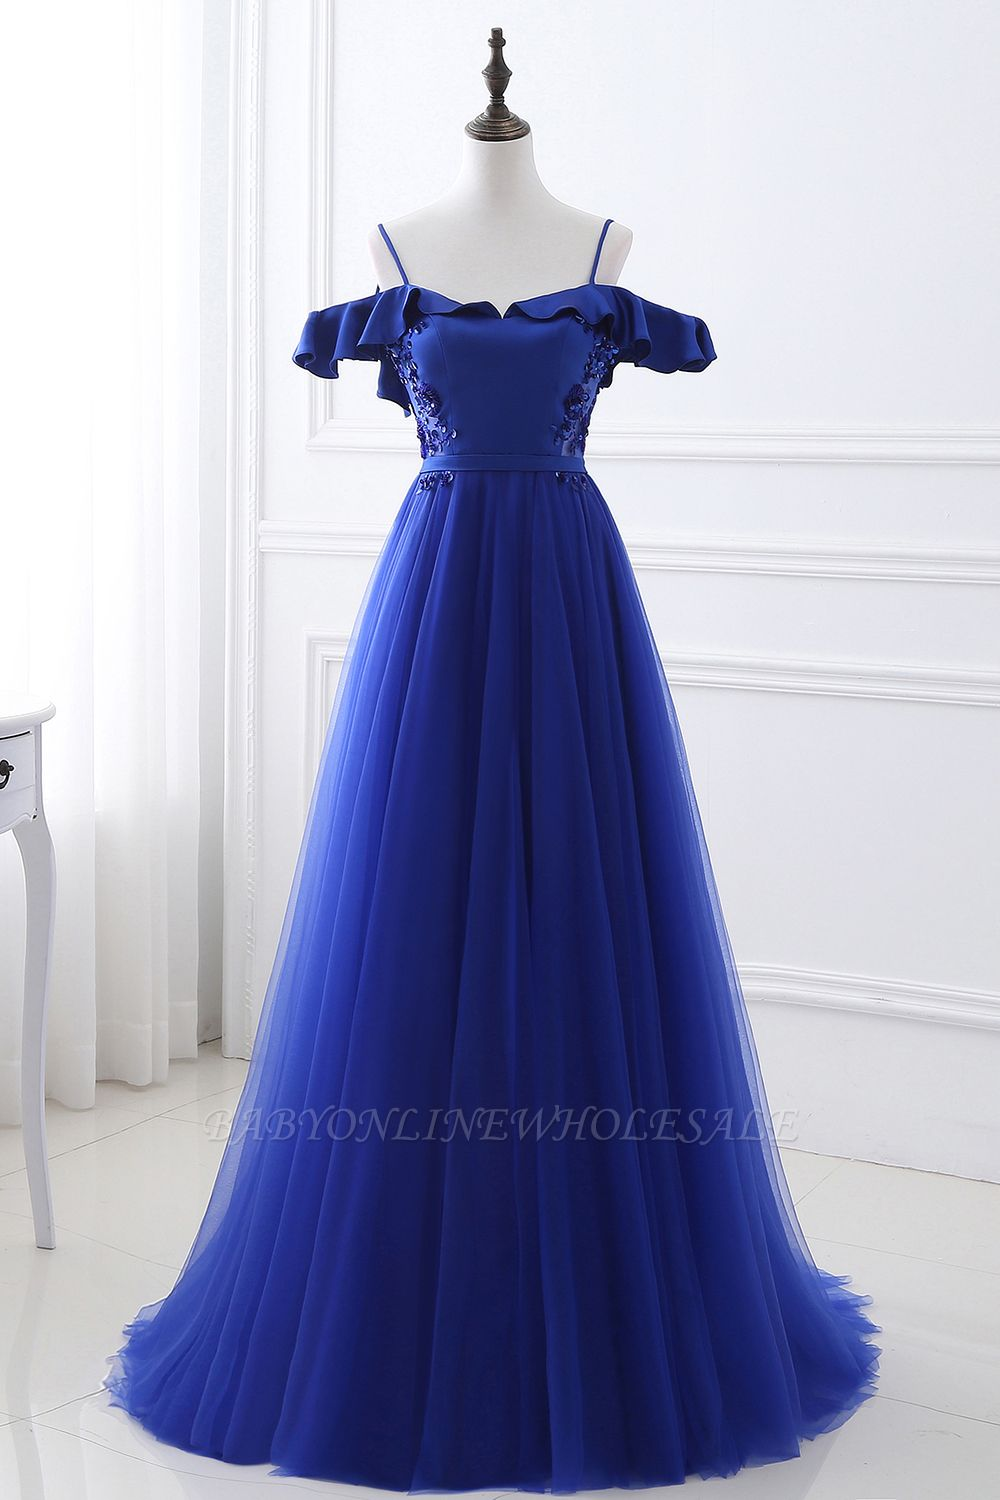 Stunning Off the shoulder blue Tulle ball gown prom dresses